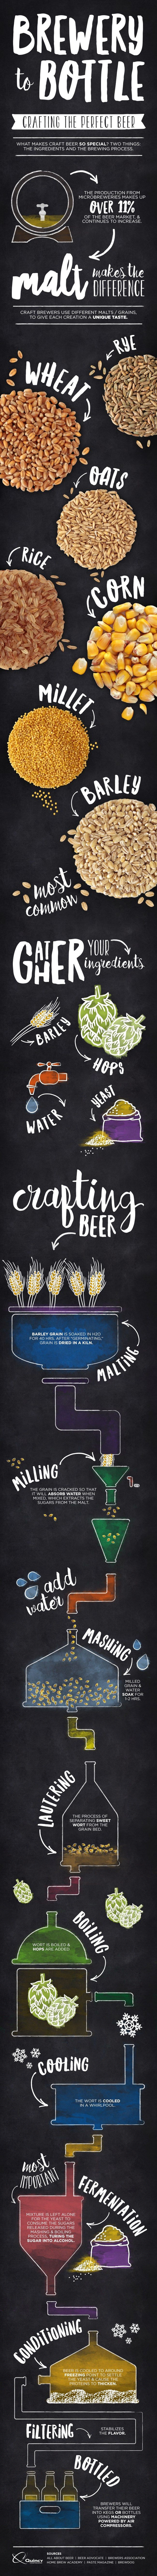 Brewery to Bottle Infographic on how to brew beer - homebrewing guide with…